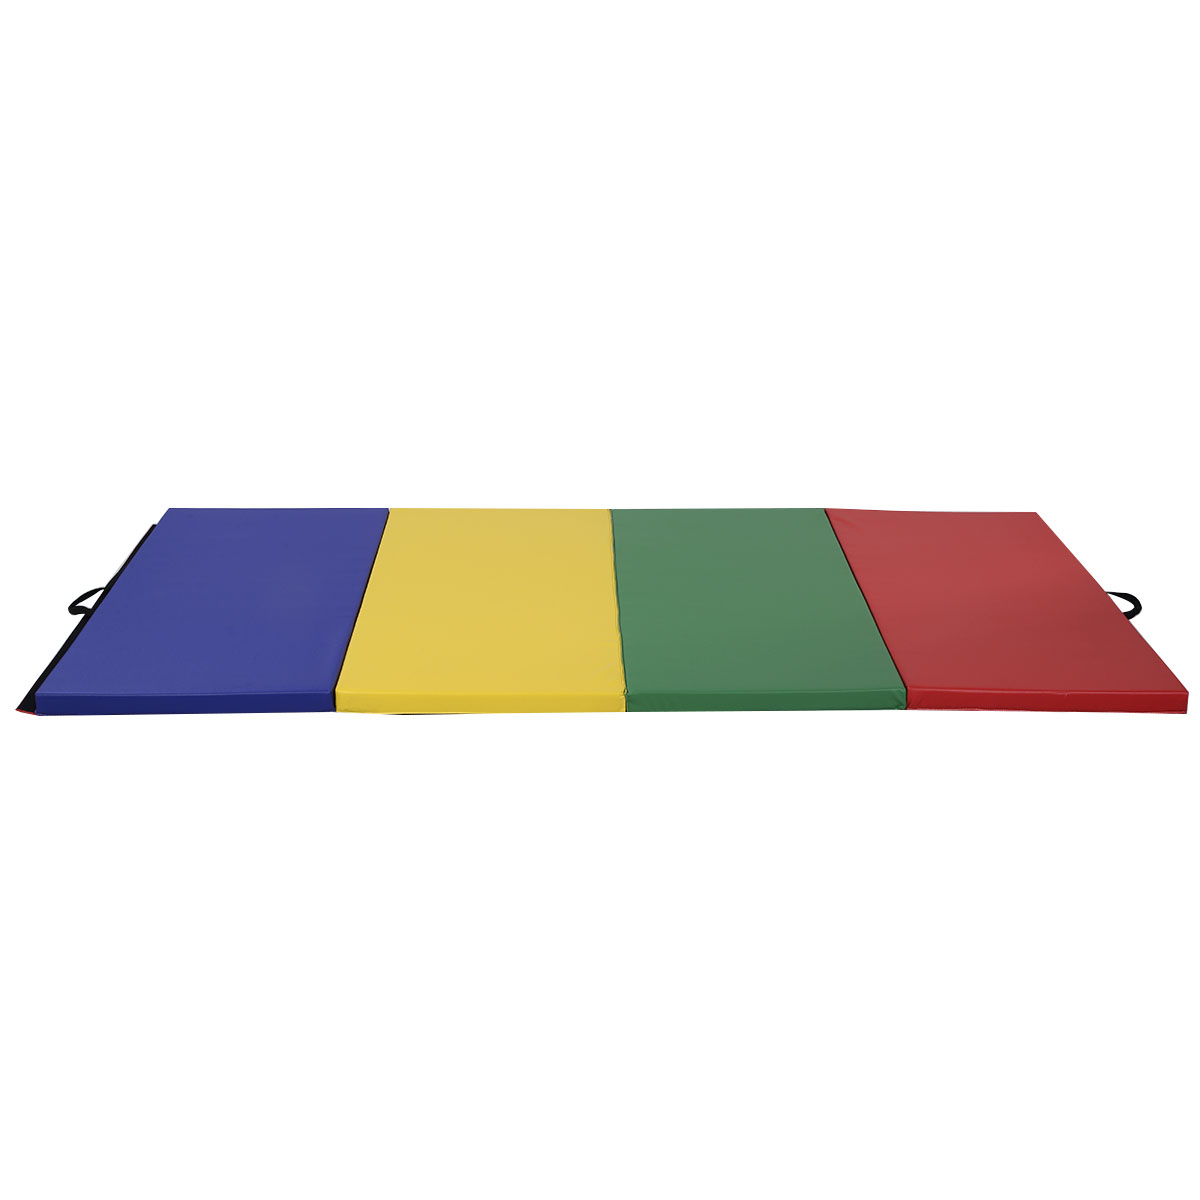 Worksheet Cbb Dance Mat costway 4x8x2 pu gym folding panel exercise tumbling pad gymnastics mat multi color walmart com